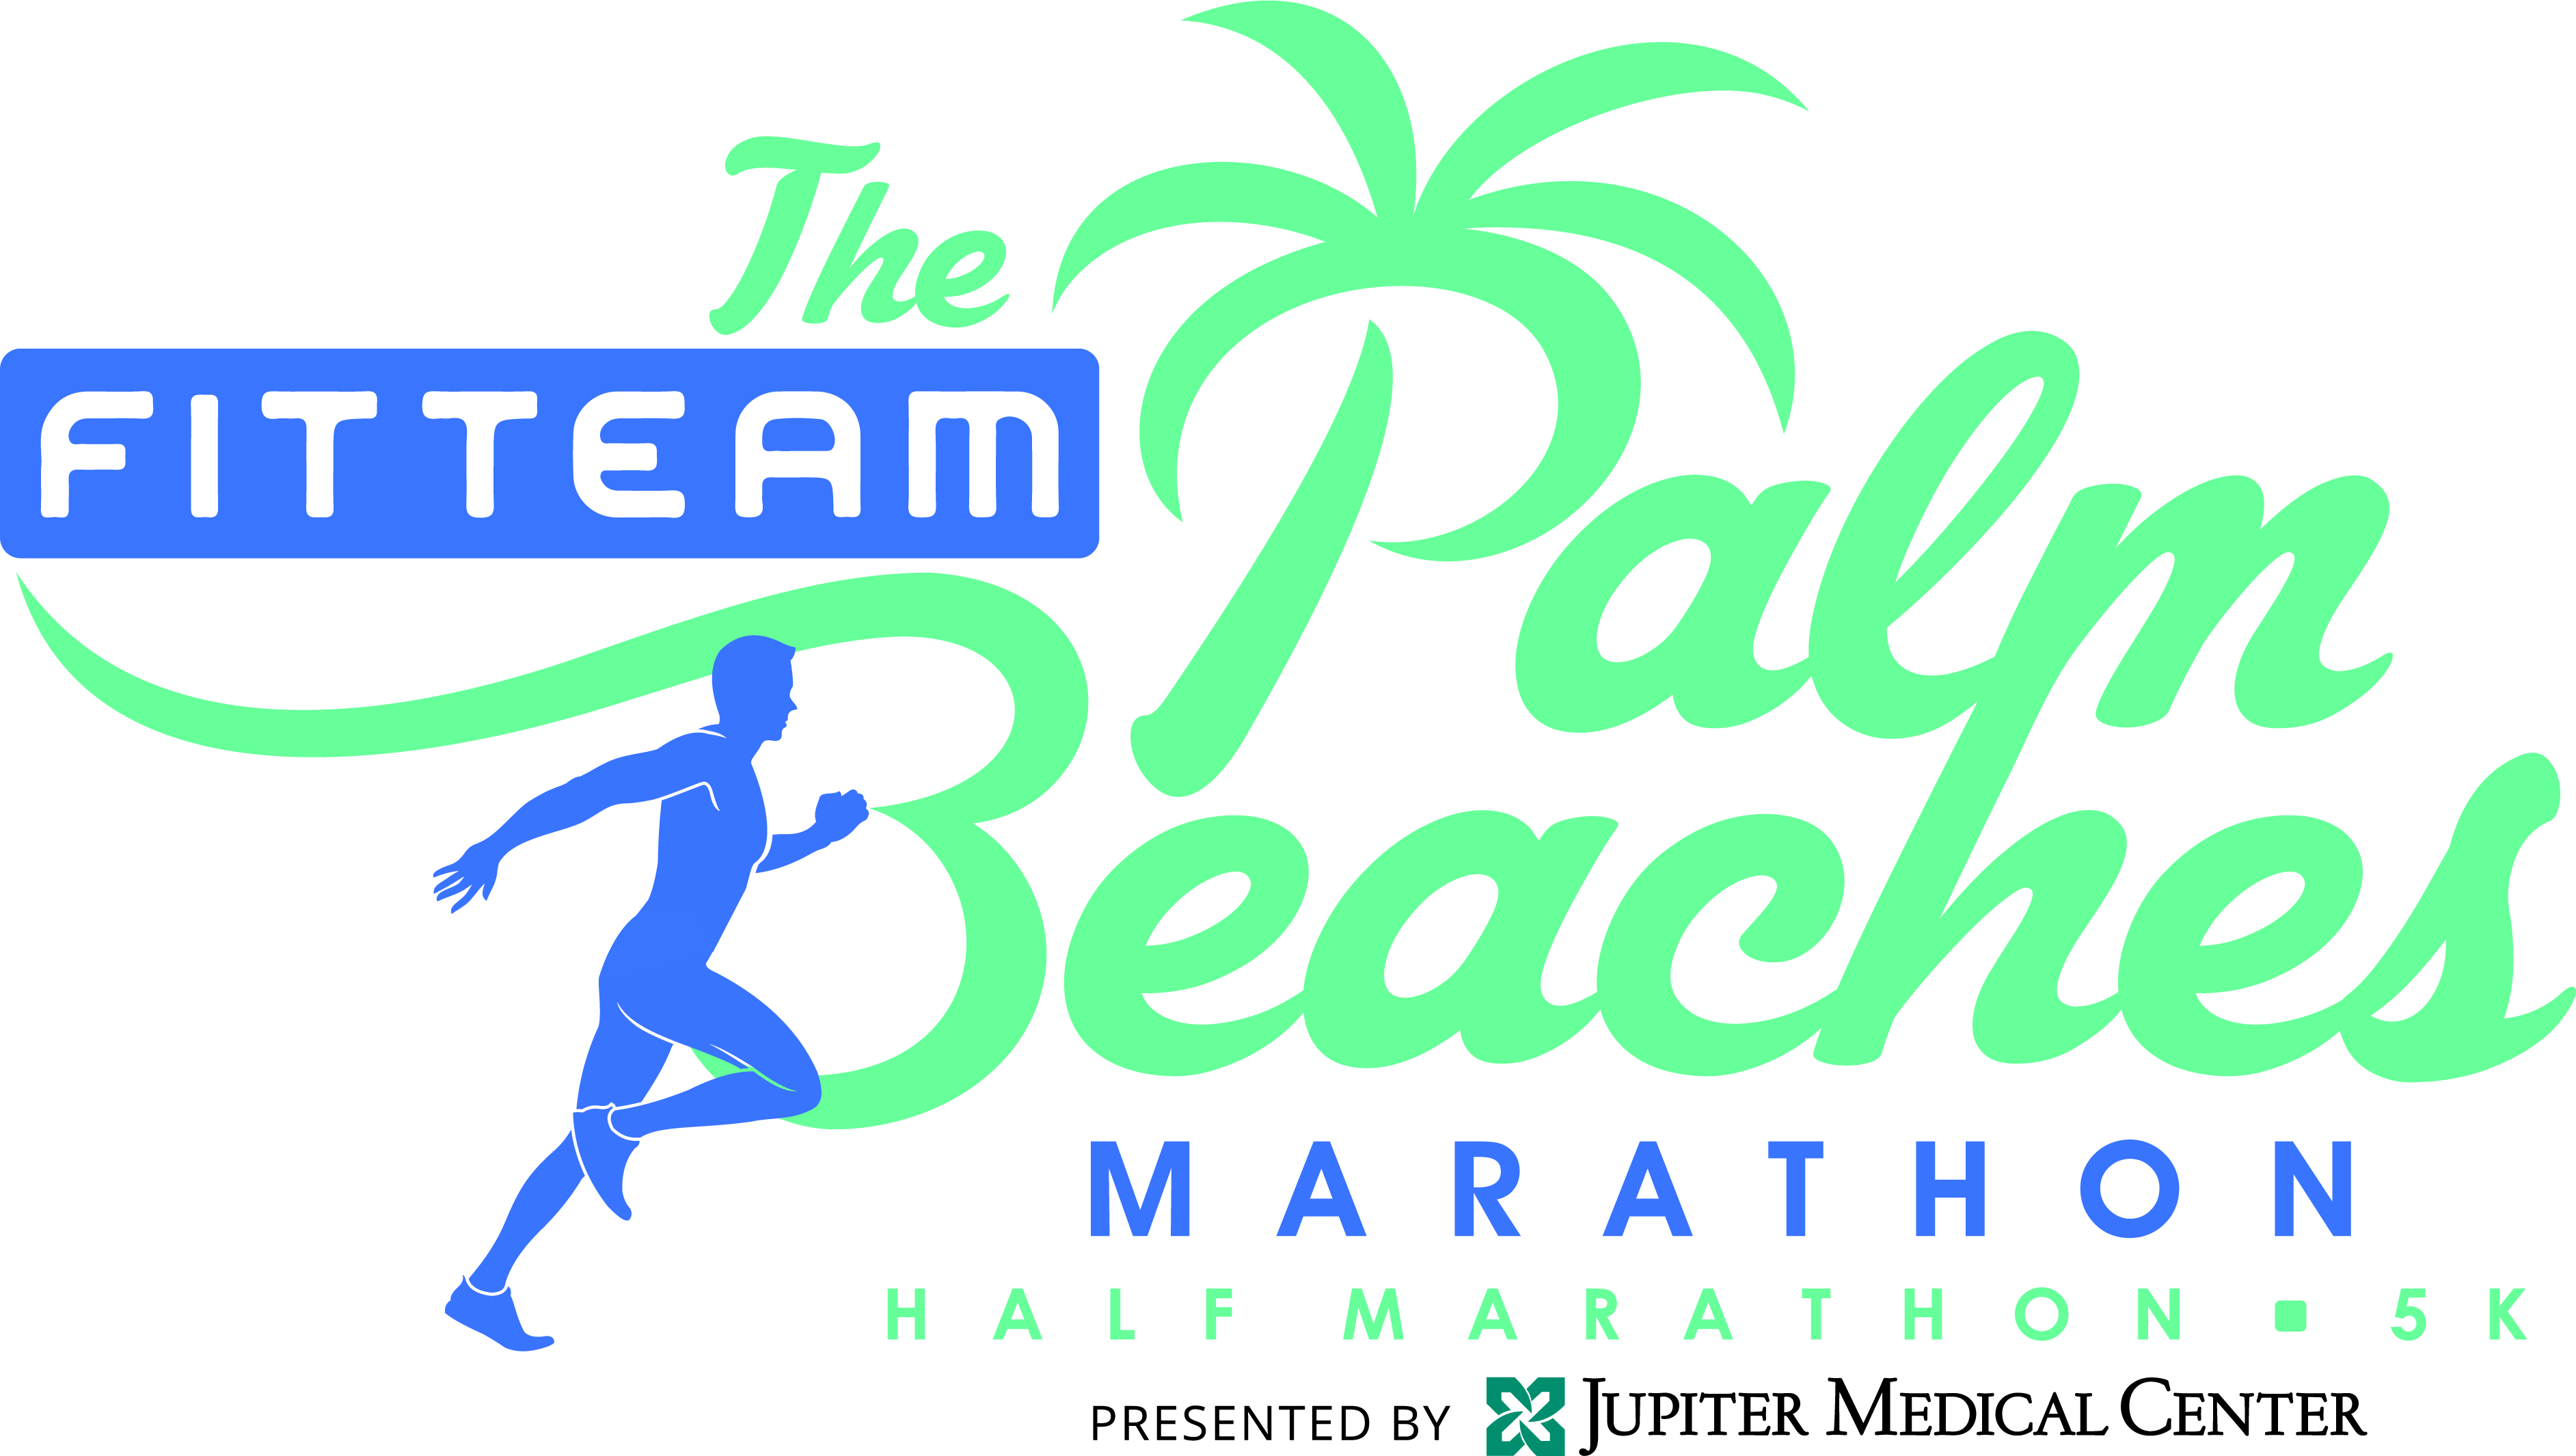 Palm Beaches Marathon LLC